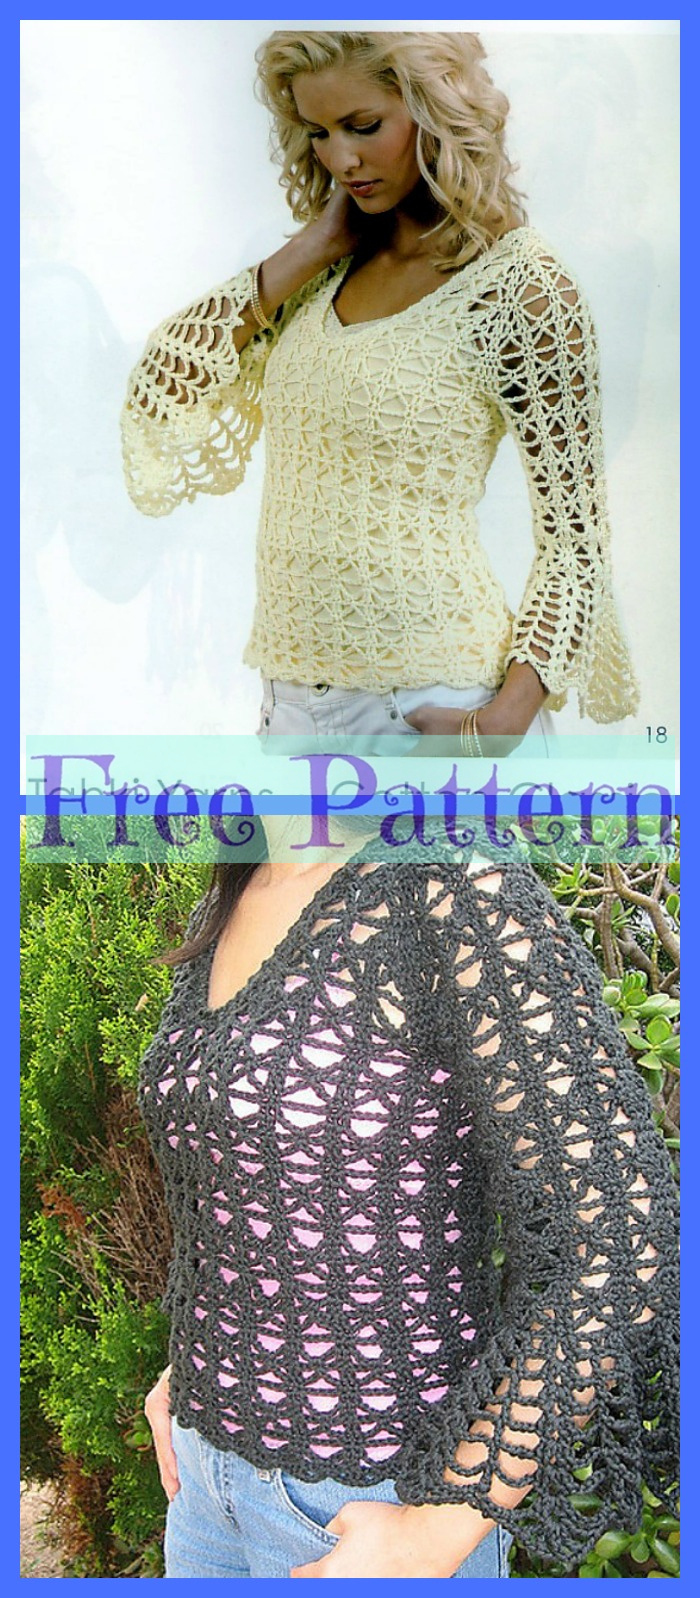 diy4ever-Pretty Crochet Sweaters - Free Patterns P4